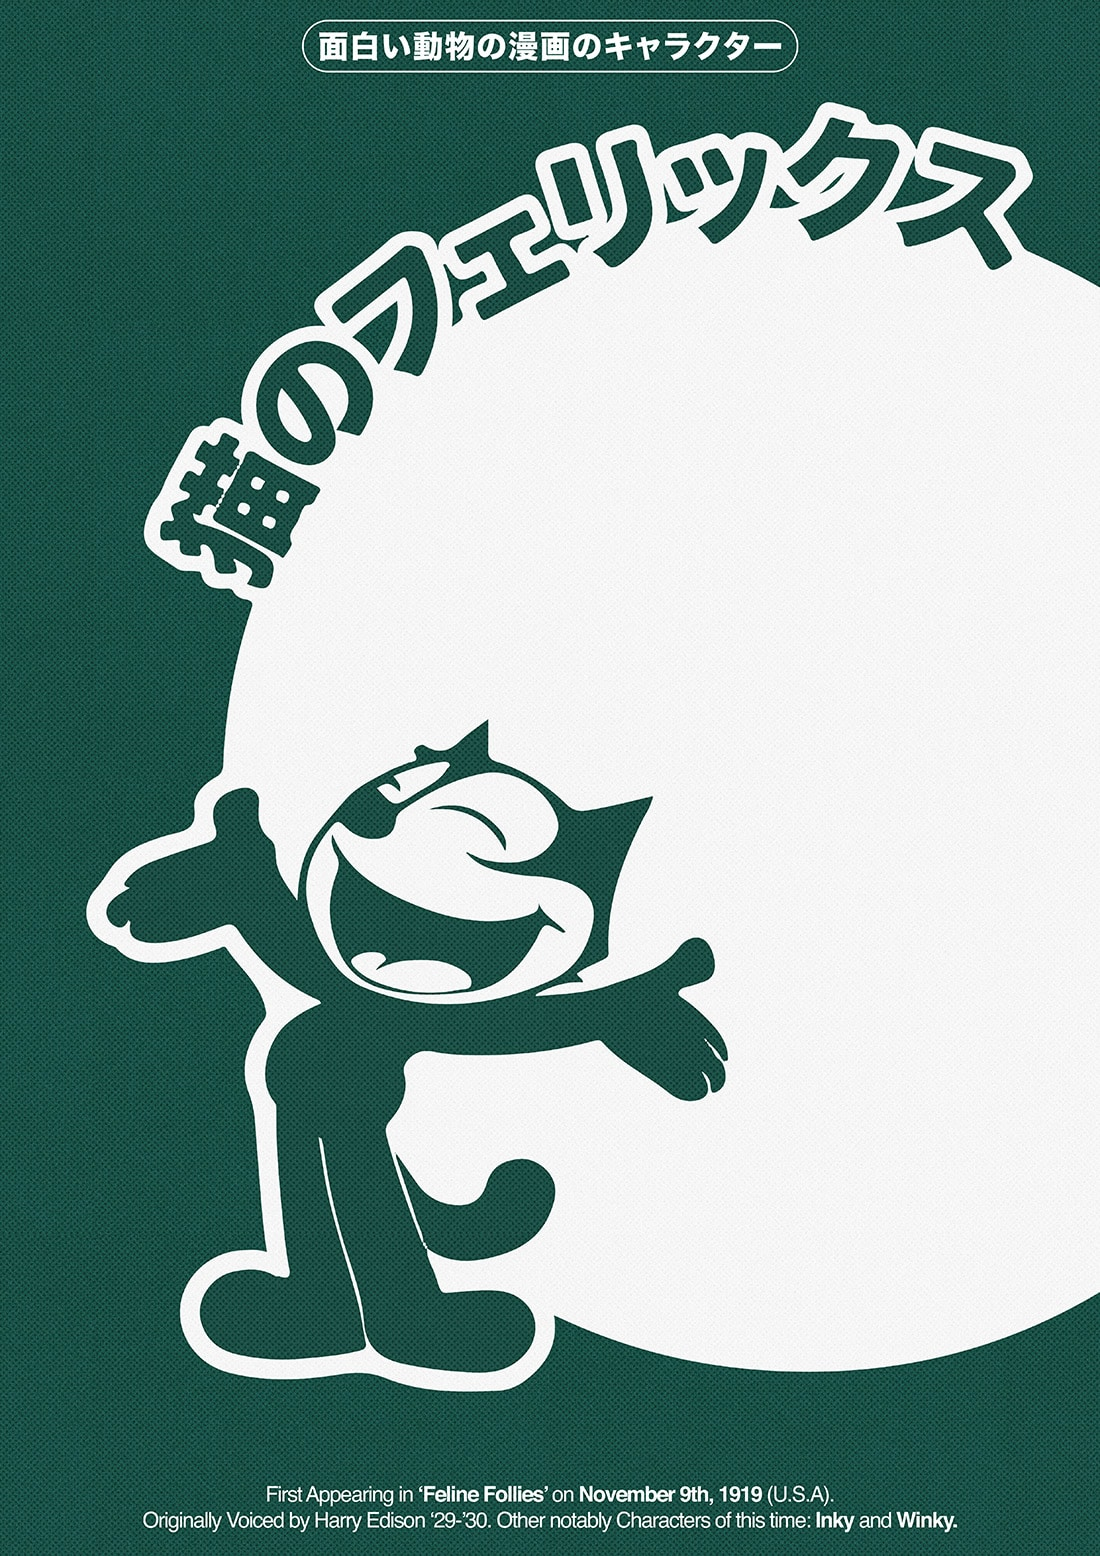 Green illustration poster of a cat smiling. The characters arms are out wide and he is smiling with his mouth open. There is Japanese typography at the top of this graphic design print. The pop art comic character will undoubtedly catch the eye and spark conversations.